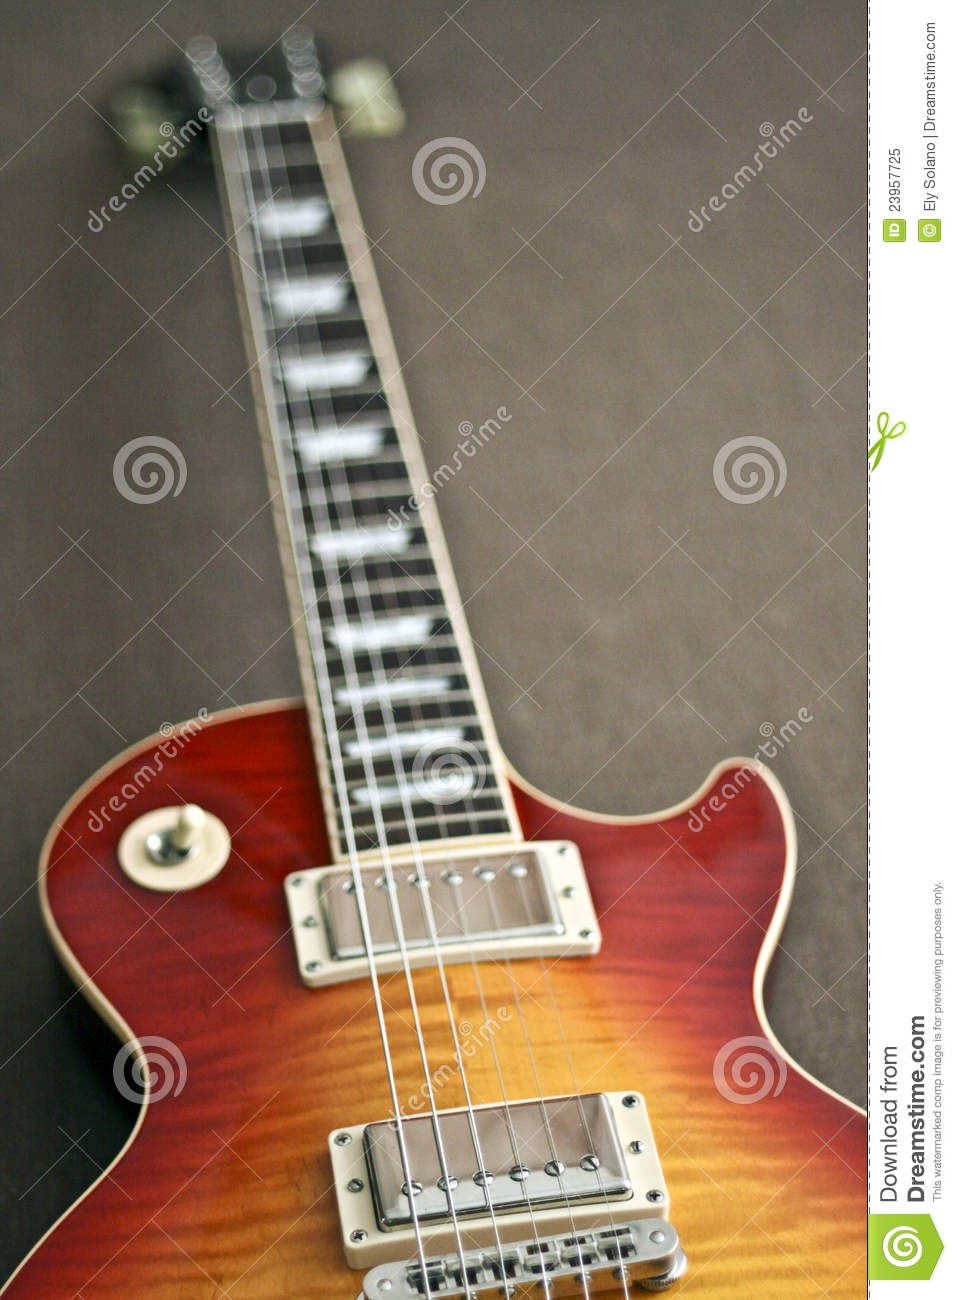 electric guitar in les paul style stock image image of musical reggae 23957725. Black Bedroom Furniture Sets. Home Design Ideas